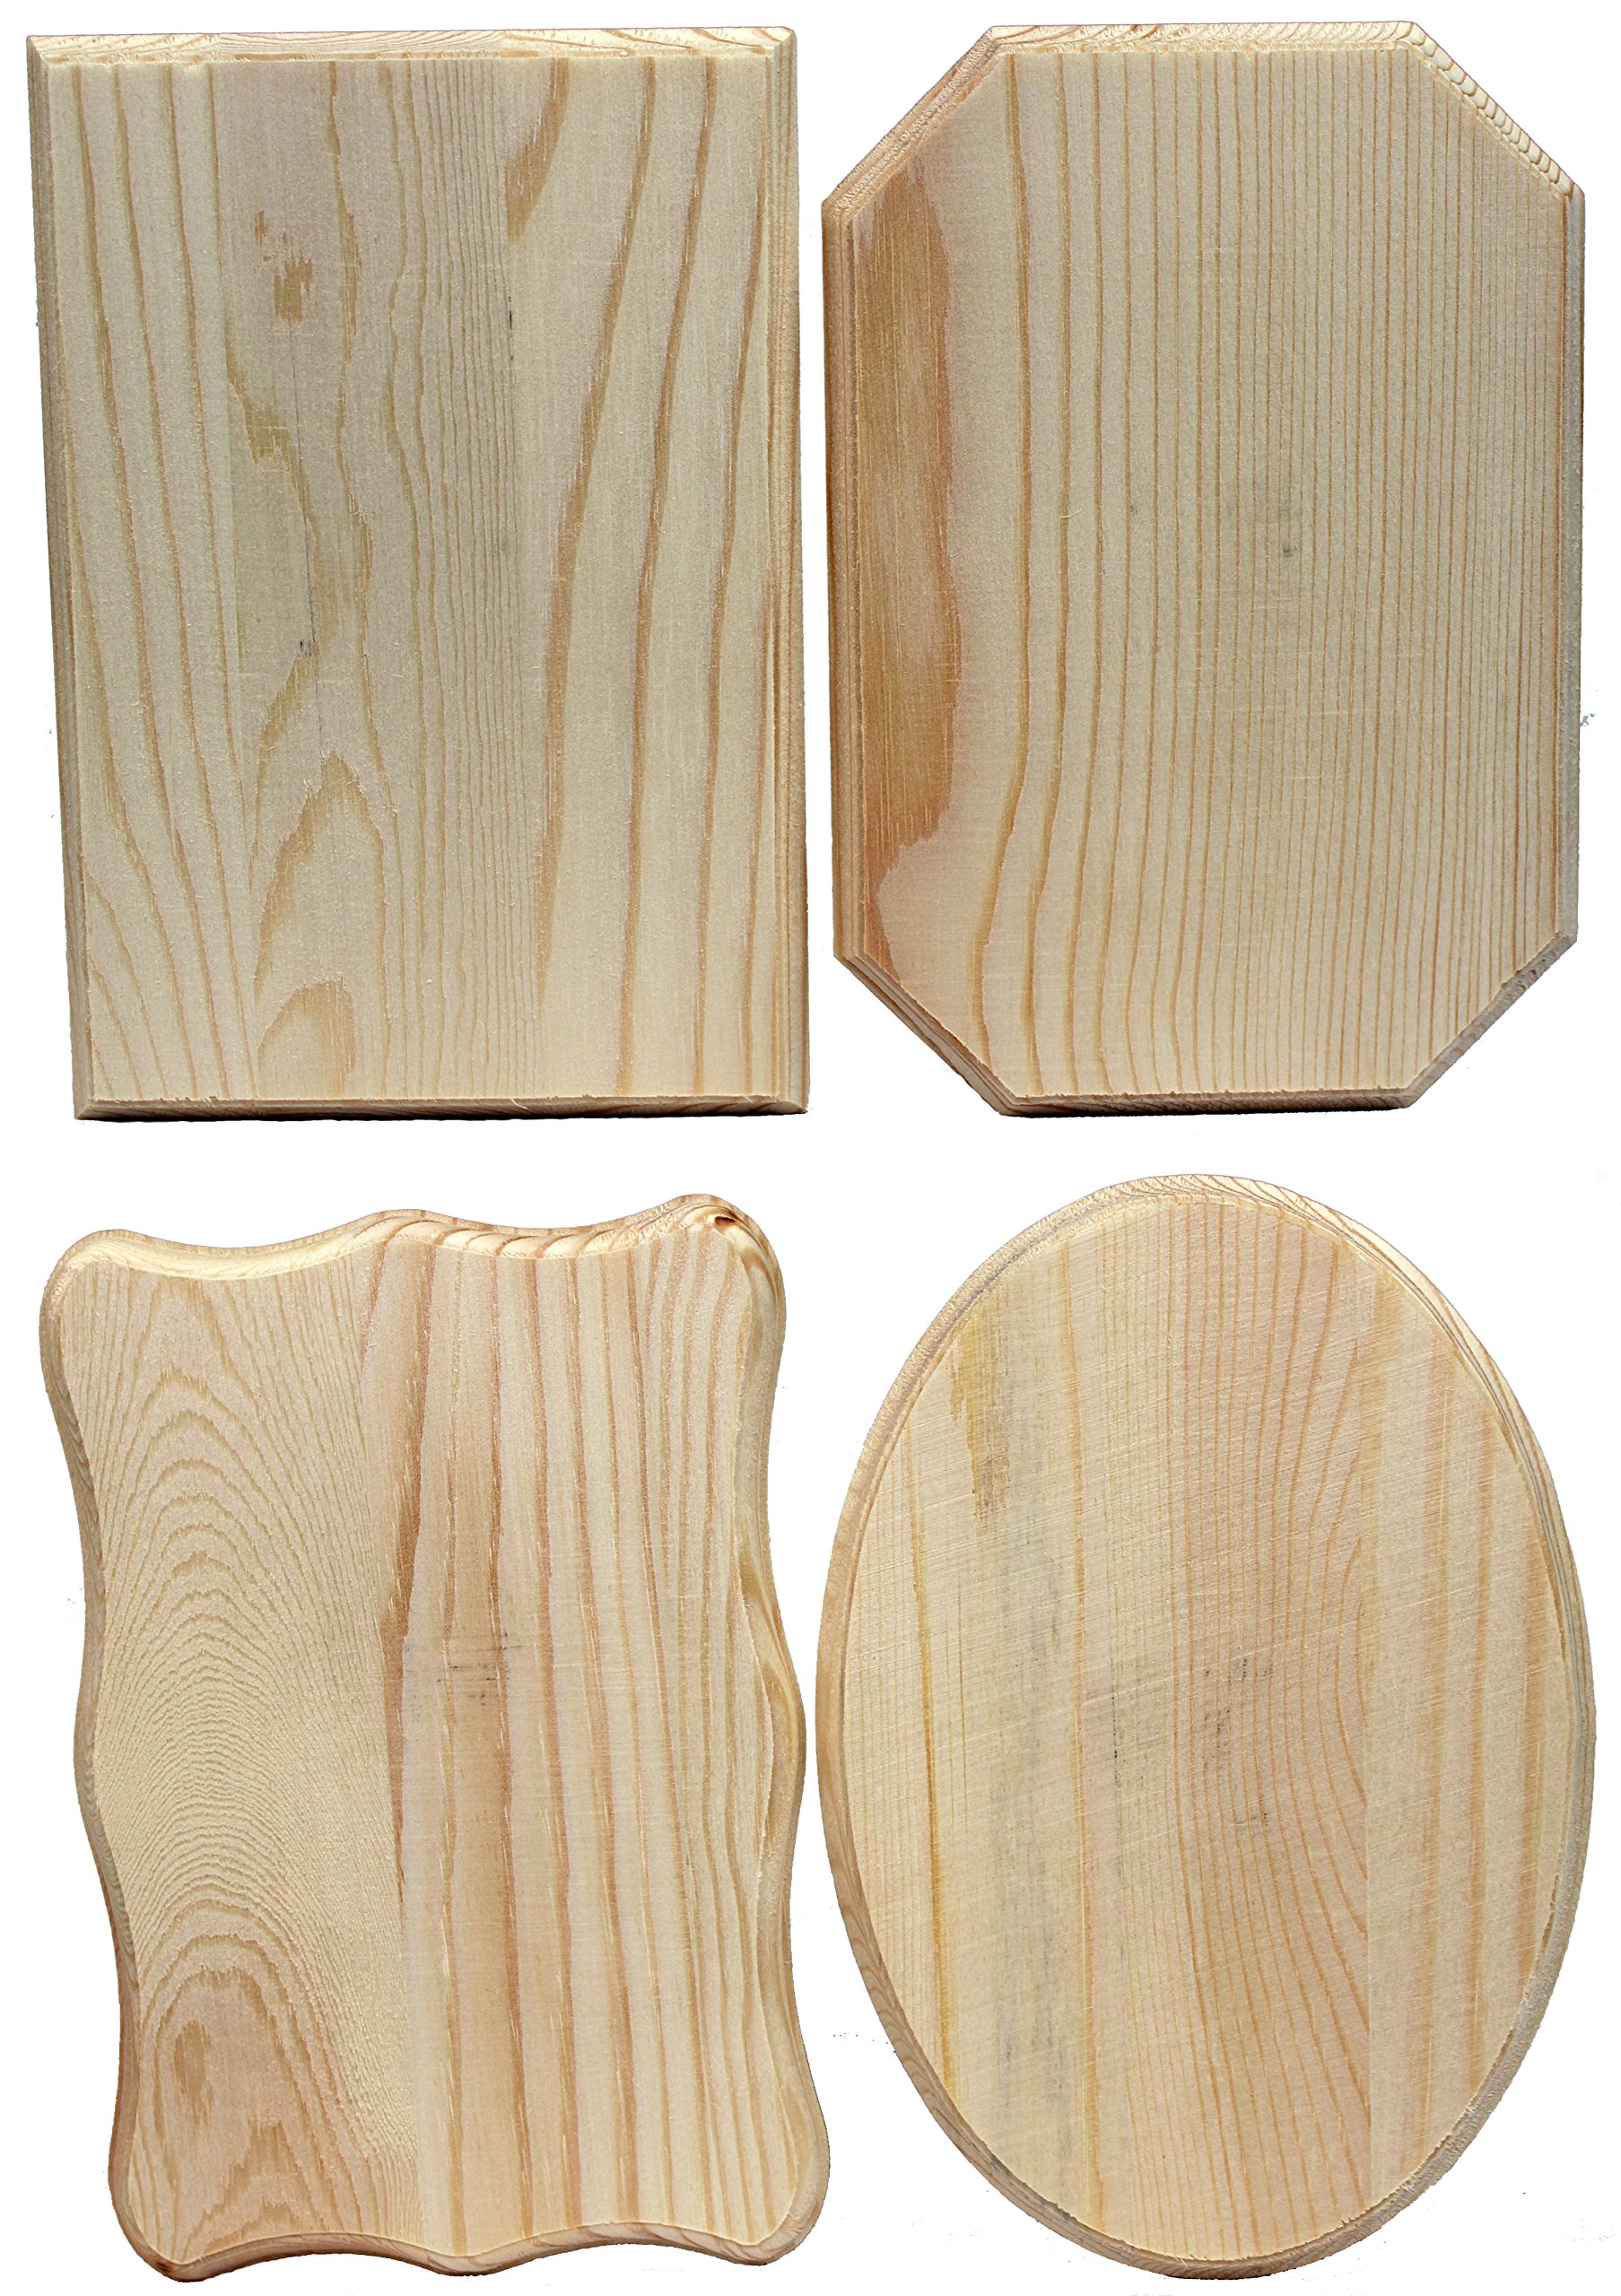 Creative Hobbies® Unfinished Wood Plaques, 6.5 Inch x 4.5 Inch, 4 Assorted Shapes